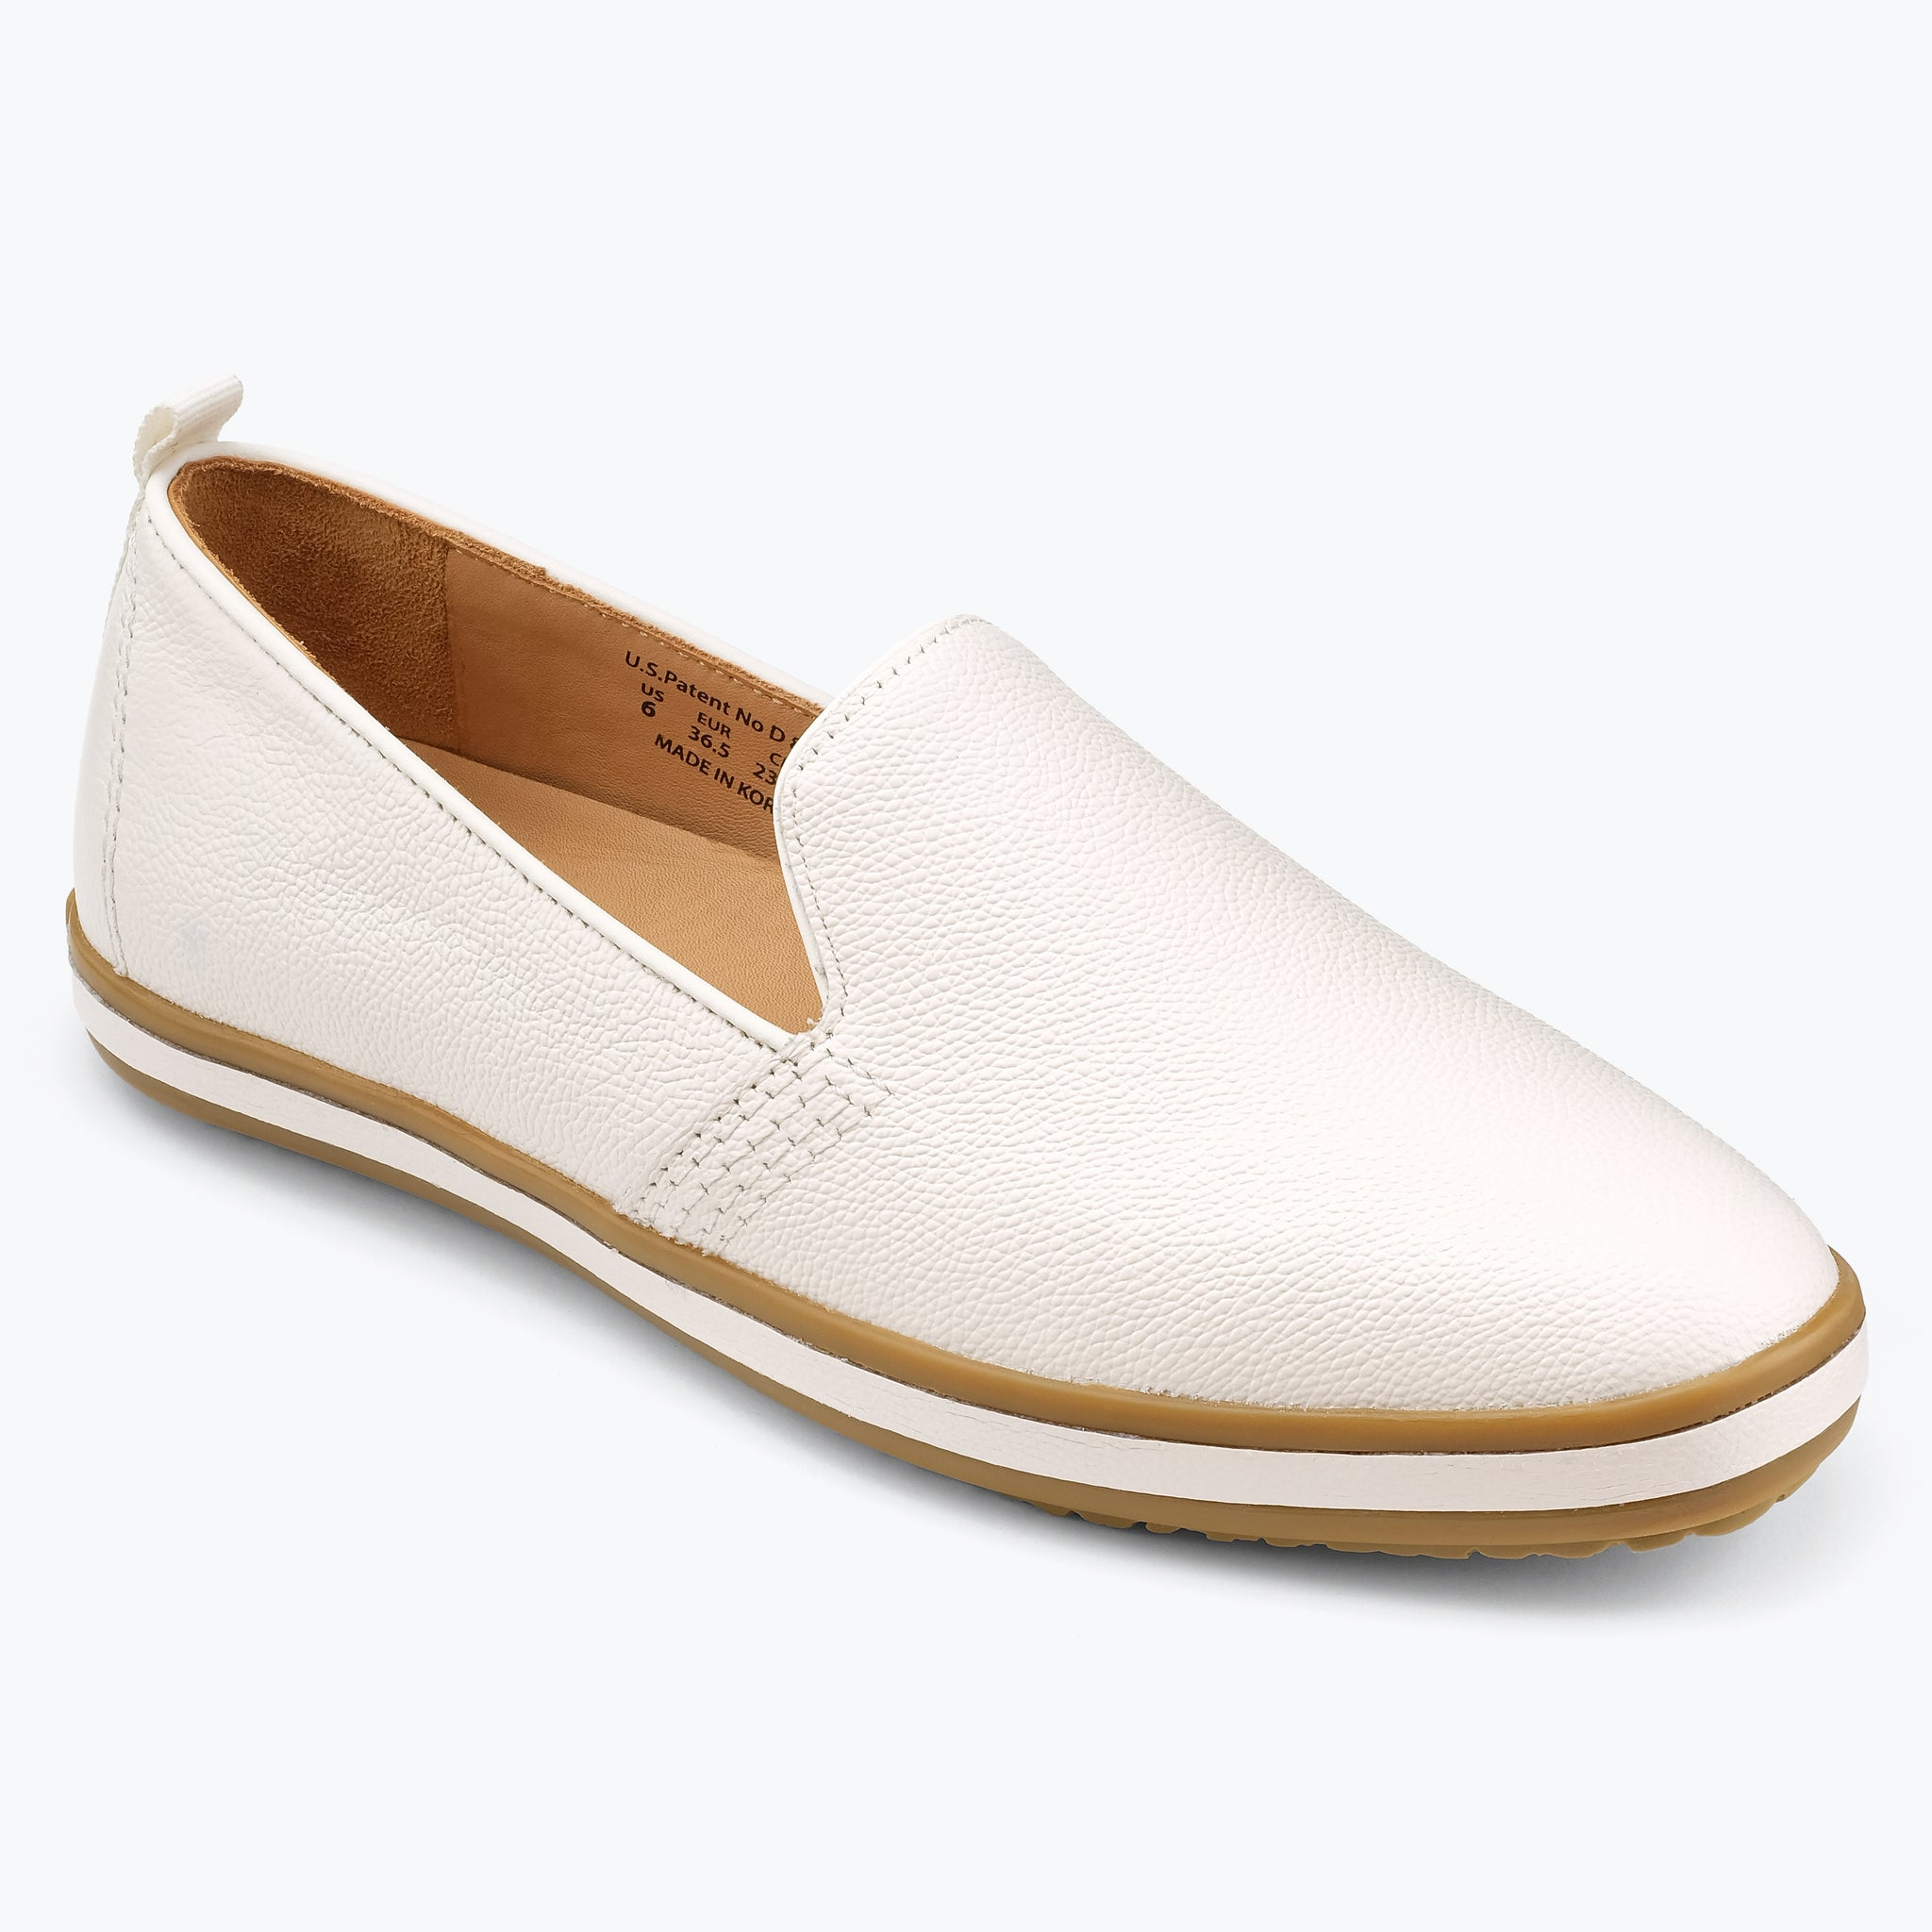 Sutton Leather Slip On - White